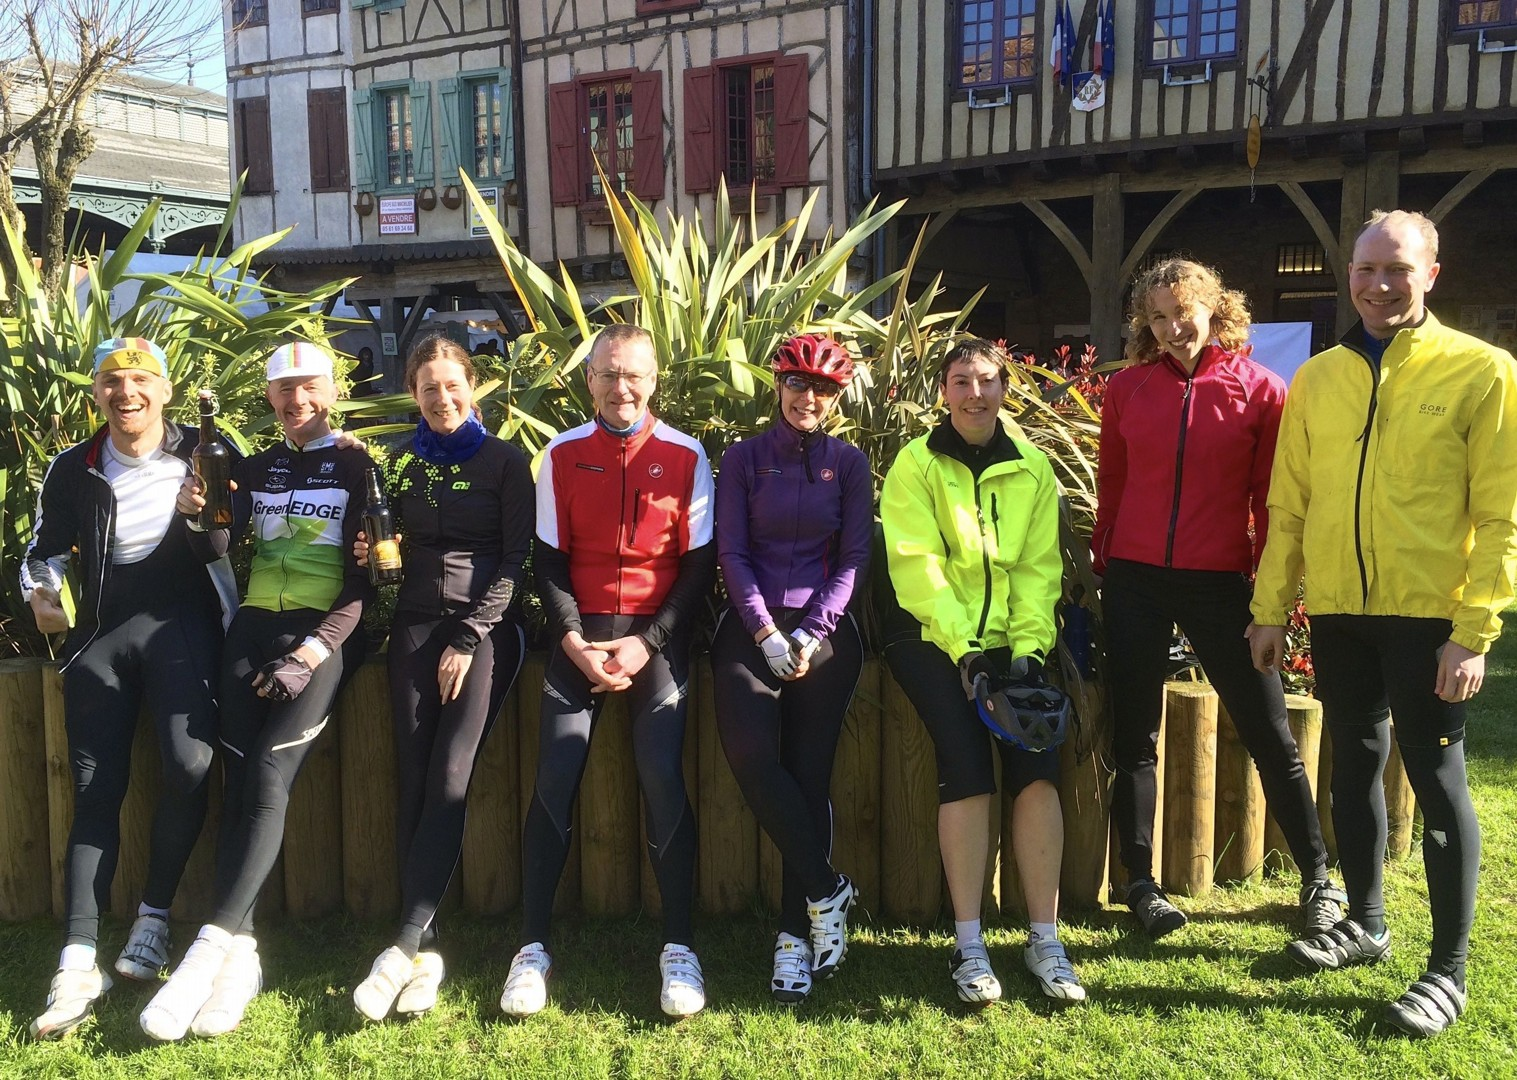 group-road-cycling-holiday-france-pyrenees-fitness-week.jpg - France - Pyrenees Fitness Week - Guided Road Cycling Holiday (Grade 3-4) - Road Cycling